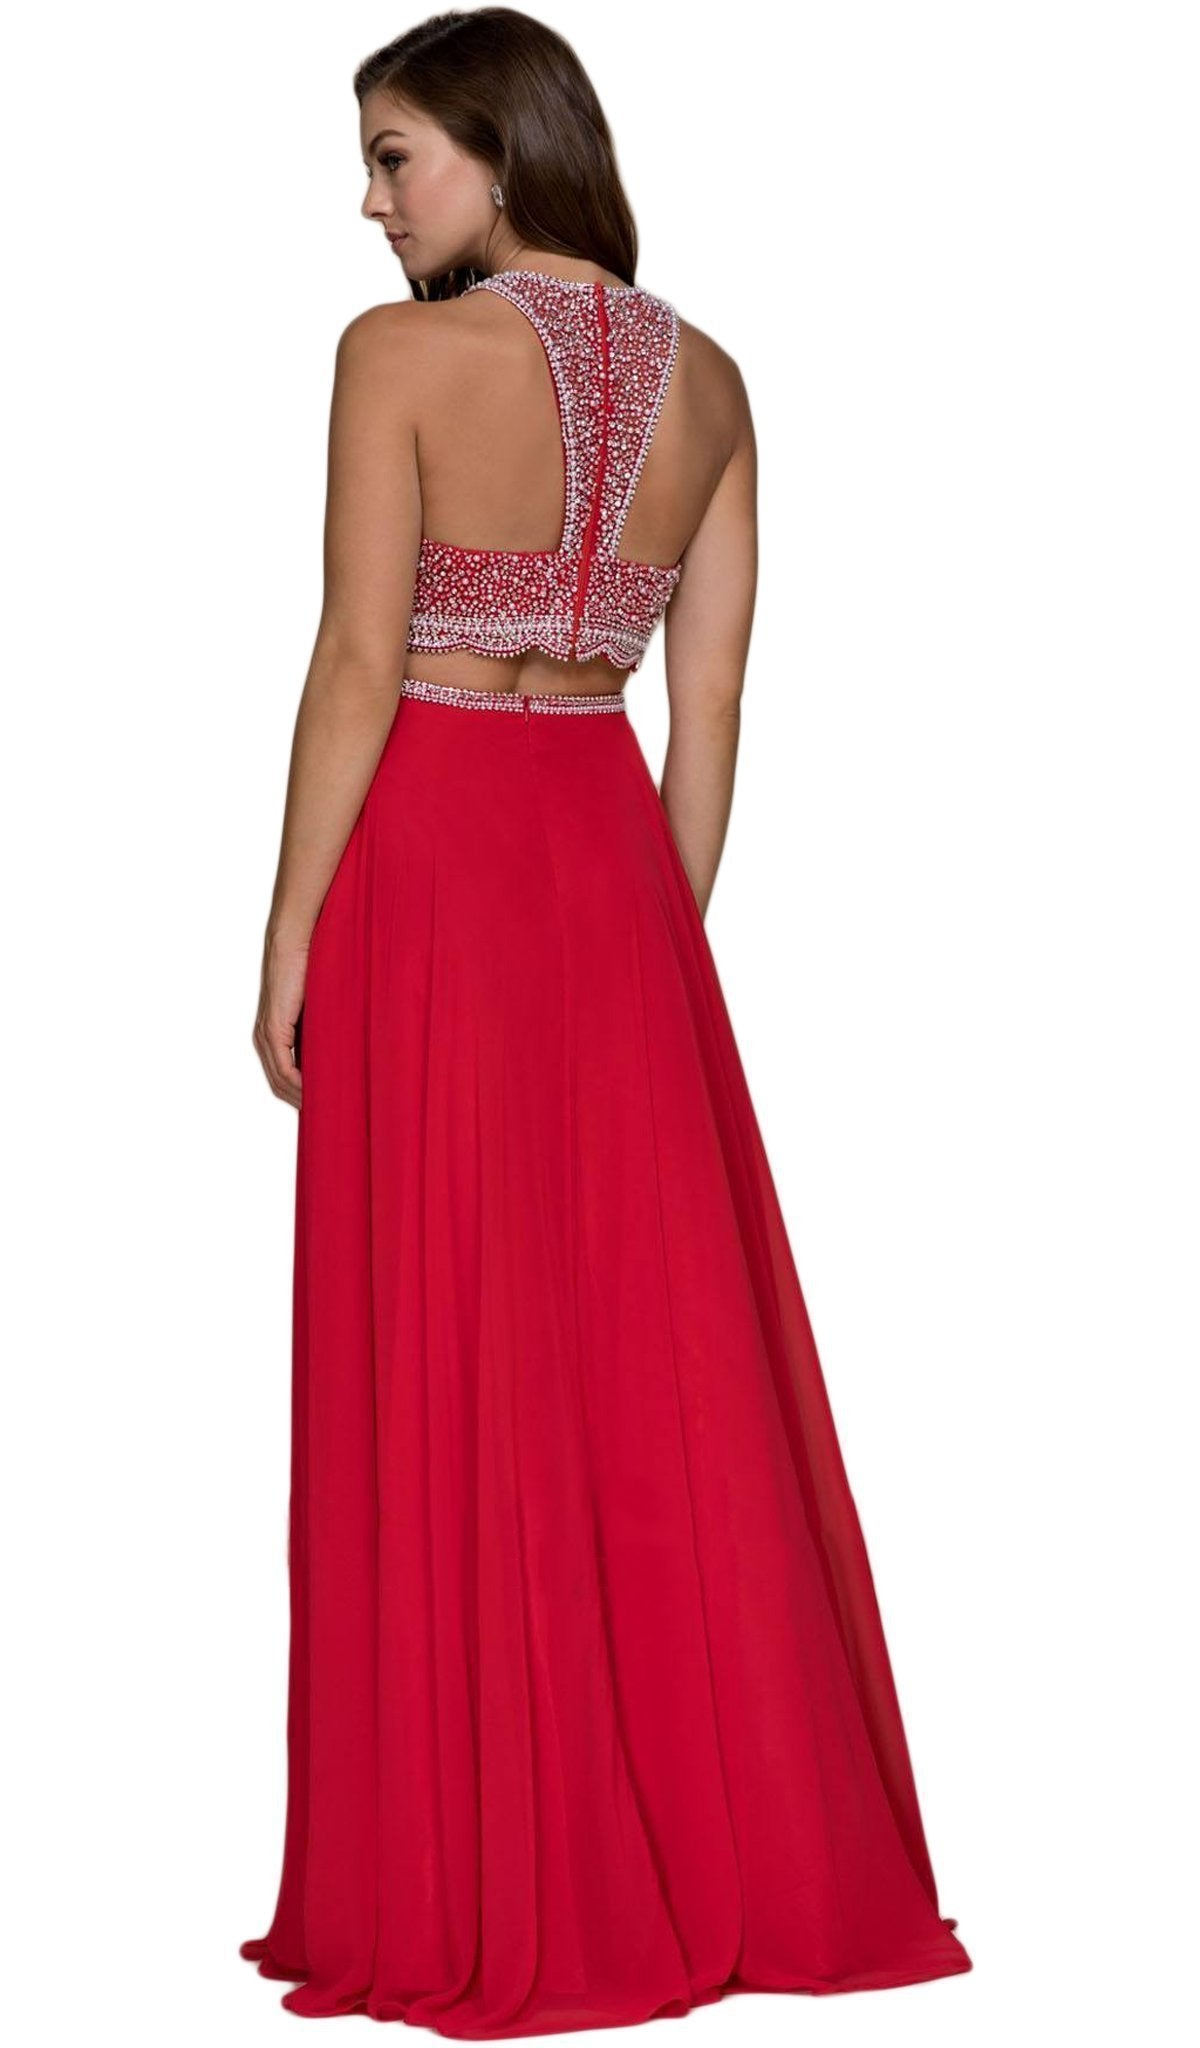 Nox Anabel - Beaded Two Piece Halter Chiffon Dress G095SC